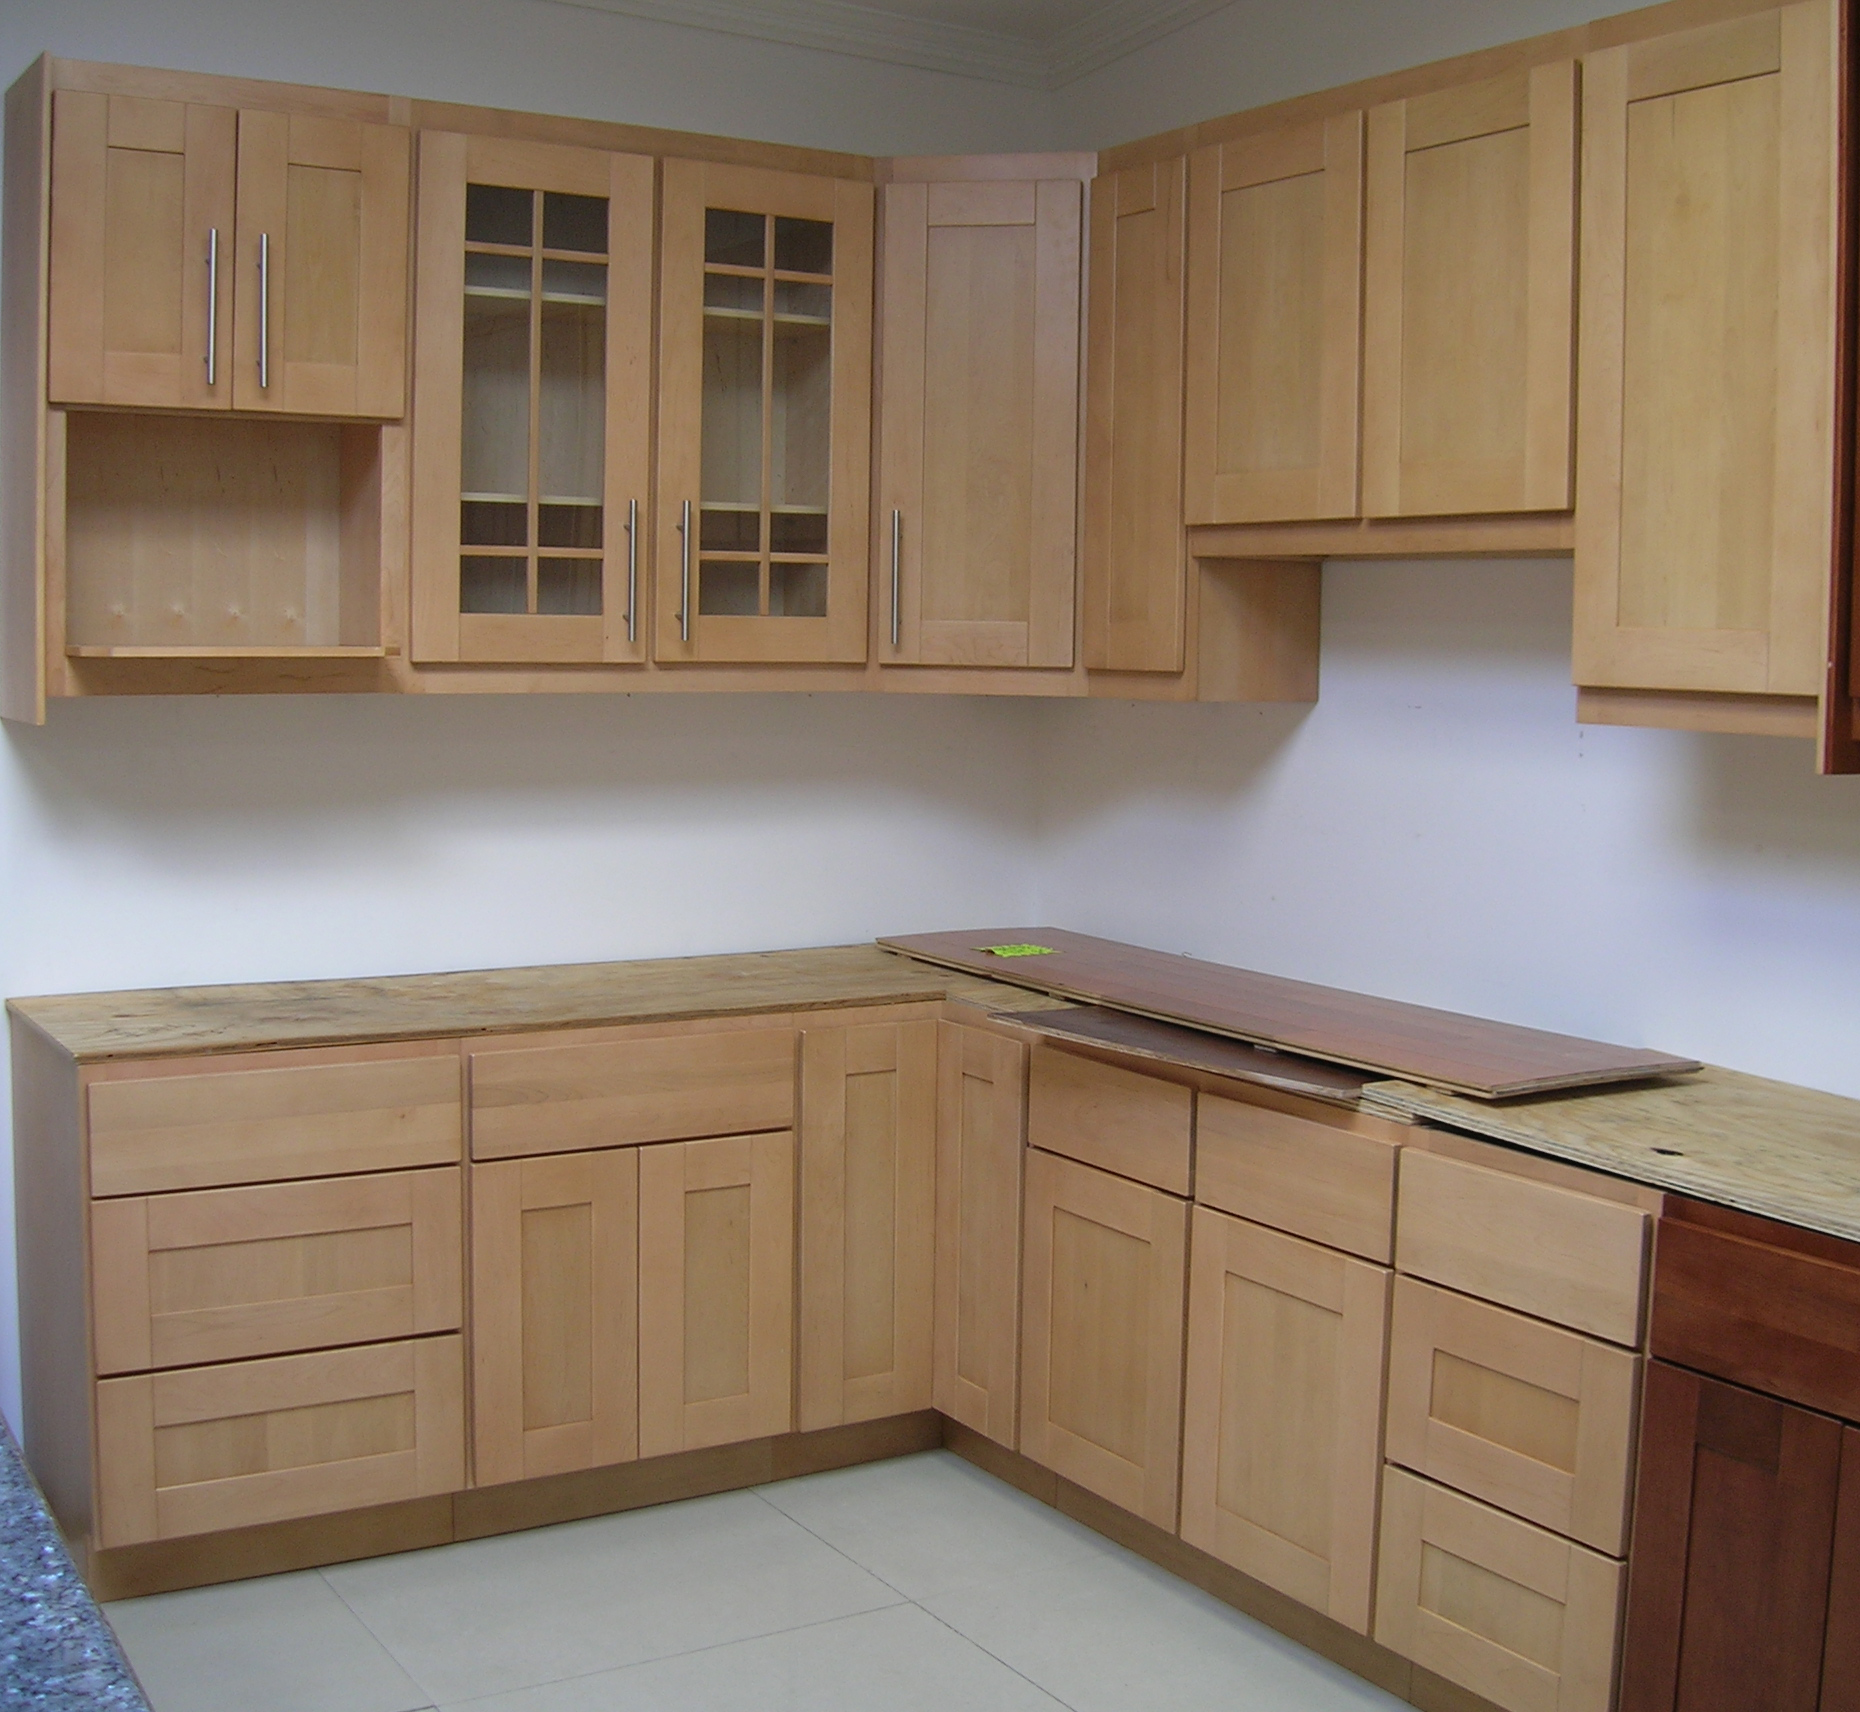 Cabinet for kitchen storage Photo - 4